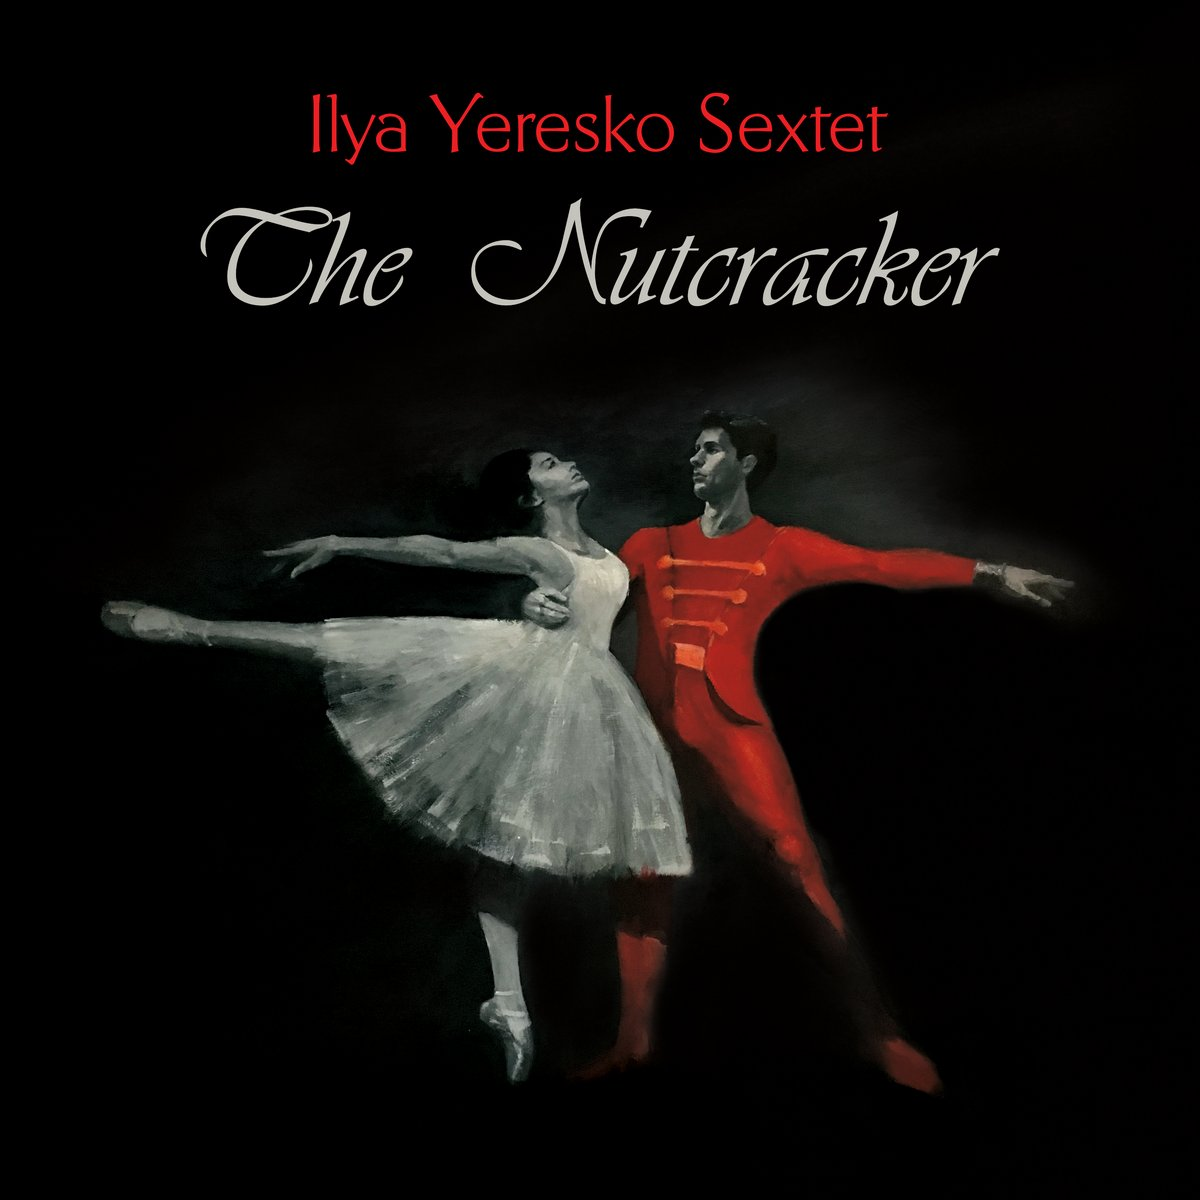 Ilya Eresko Sextet — The Nutcracker (2017)